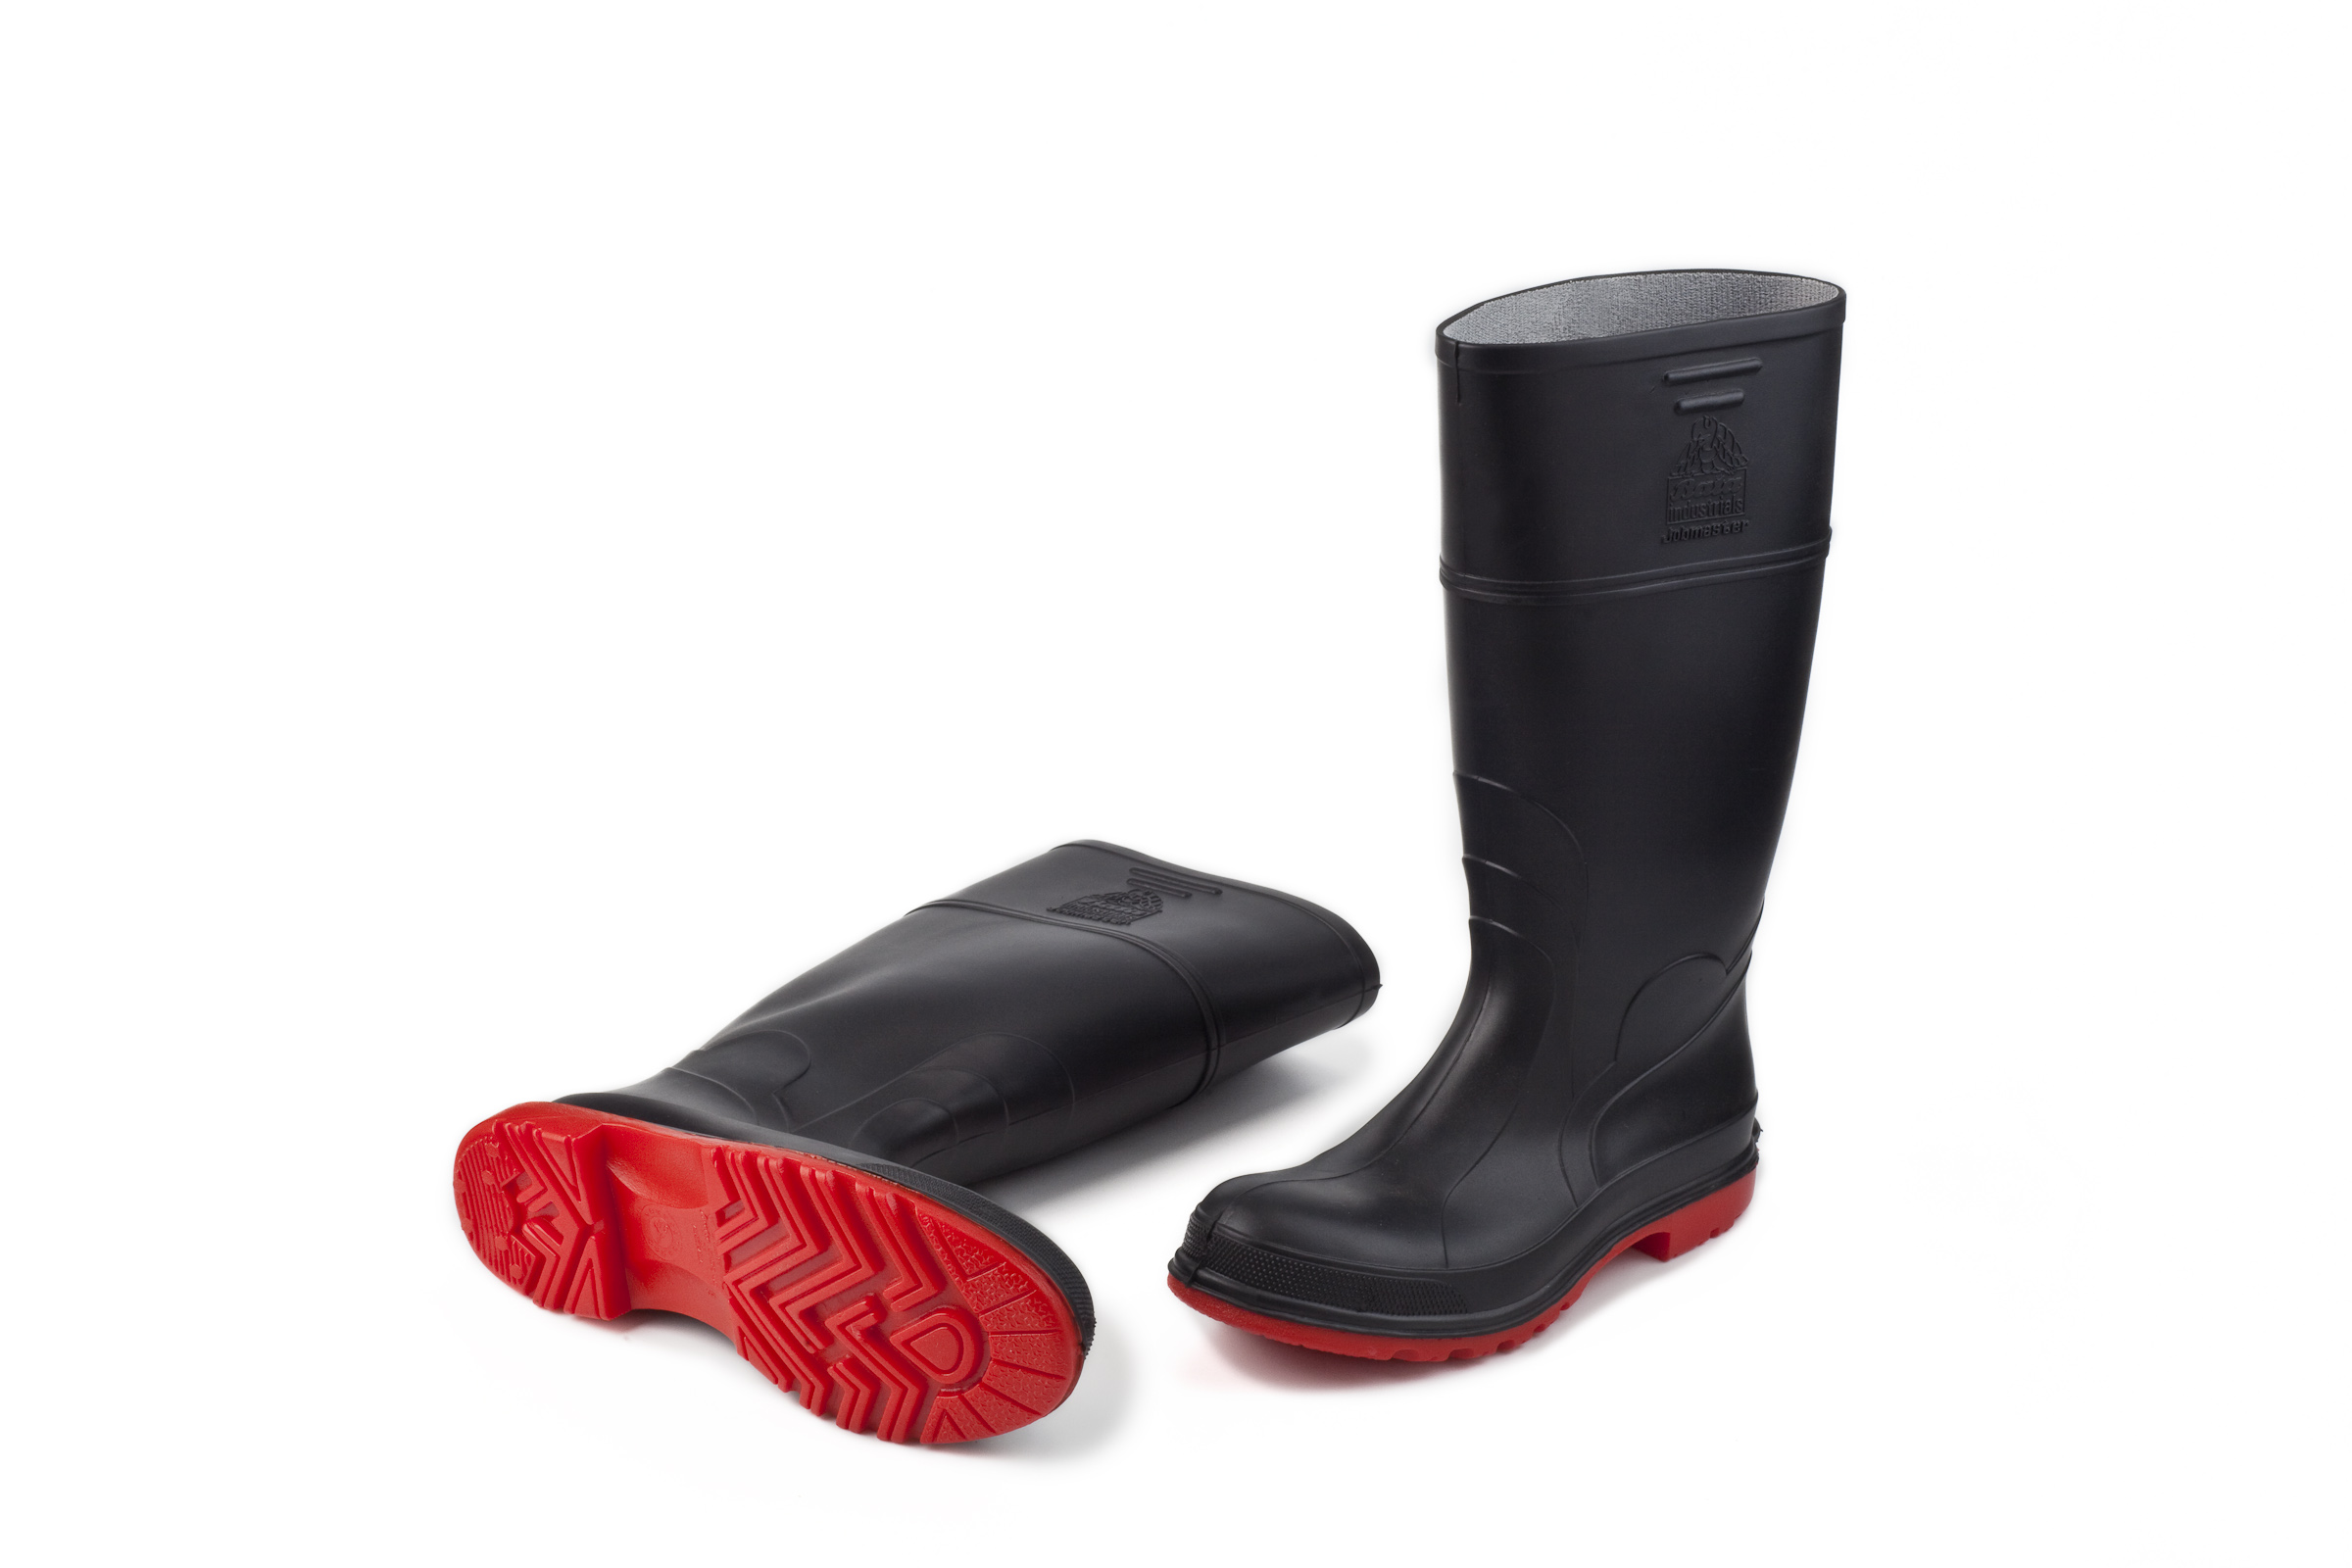 http://vetscience.sydneyestore.com.au/persistent/catalogue_images/products/Footwear-Gumboots-Bata_Industrial_Gumboot.jpg